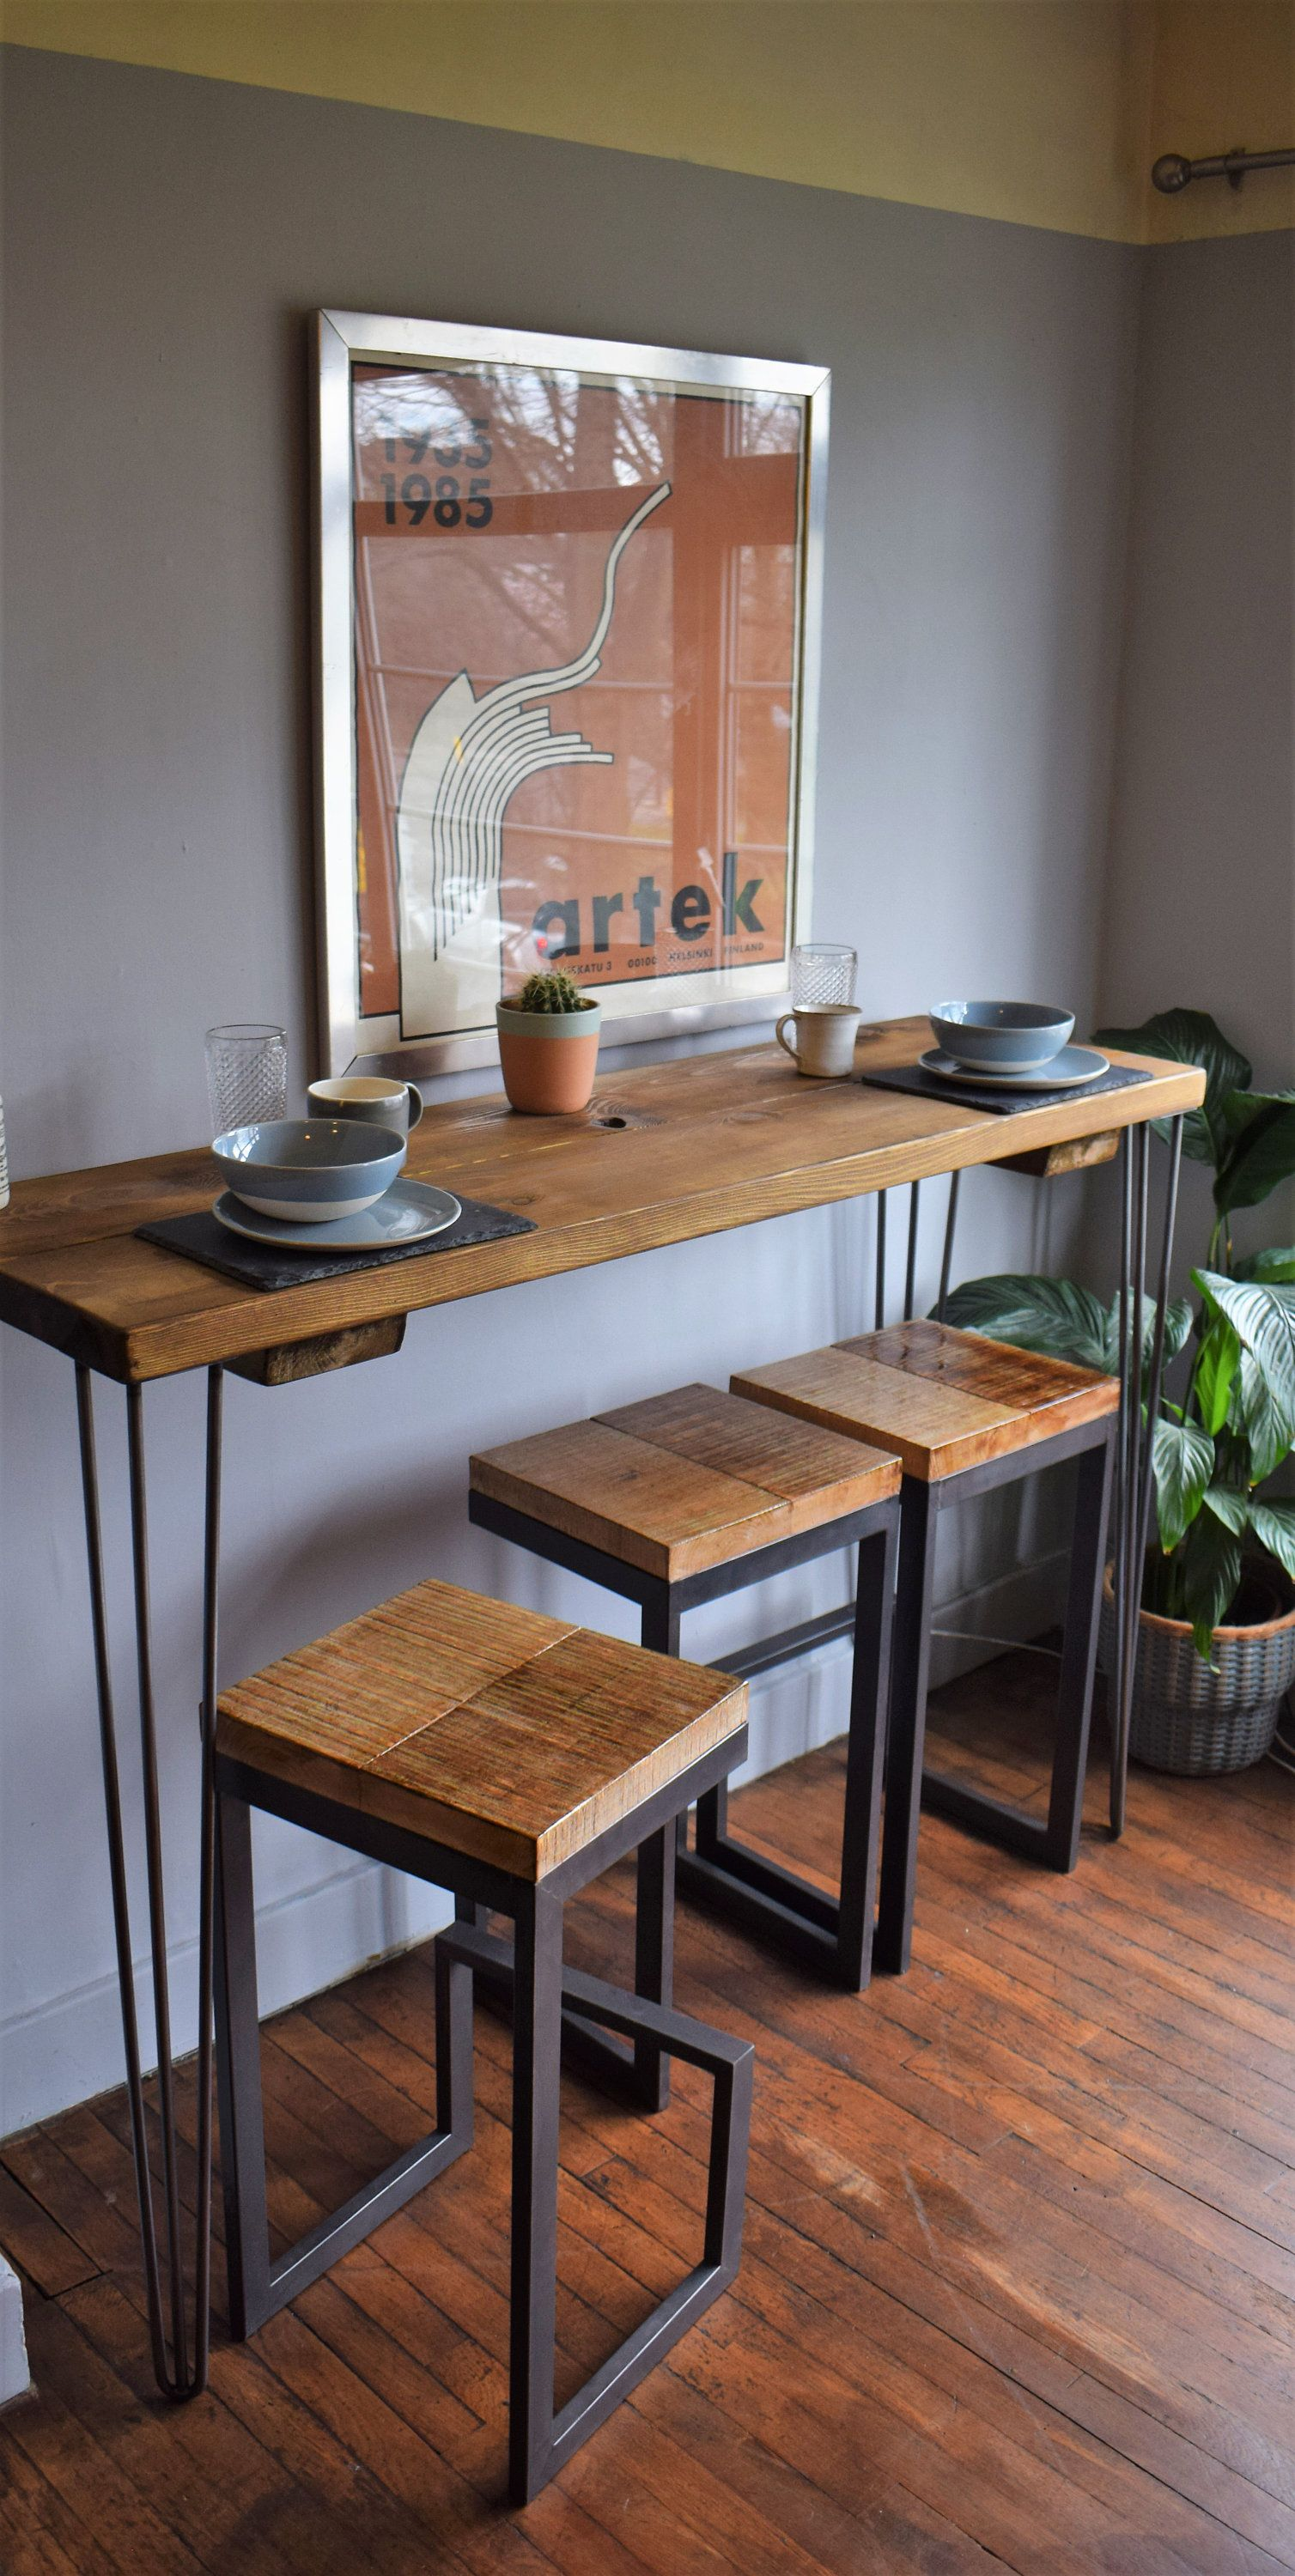 Tall Reclaimed Wood Industrial Hairpin Legs Kitchen Breakfast Bar